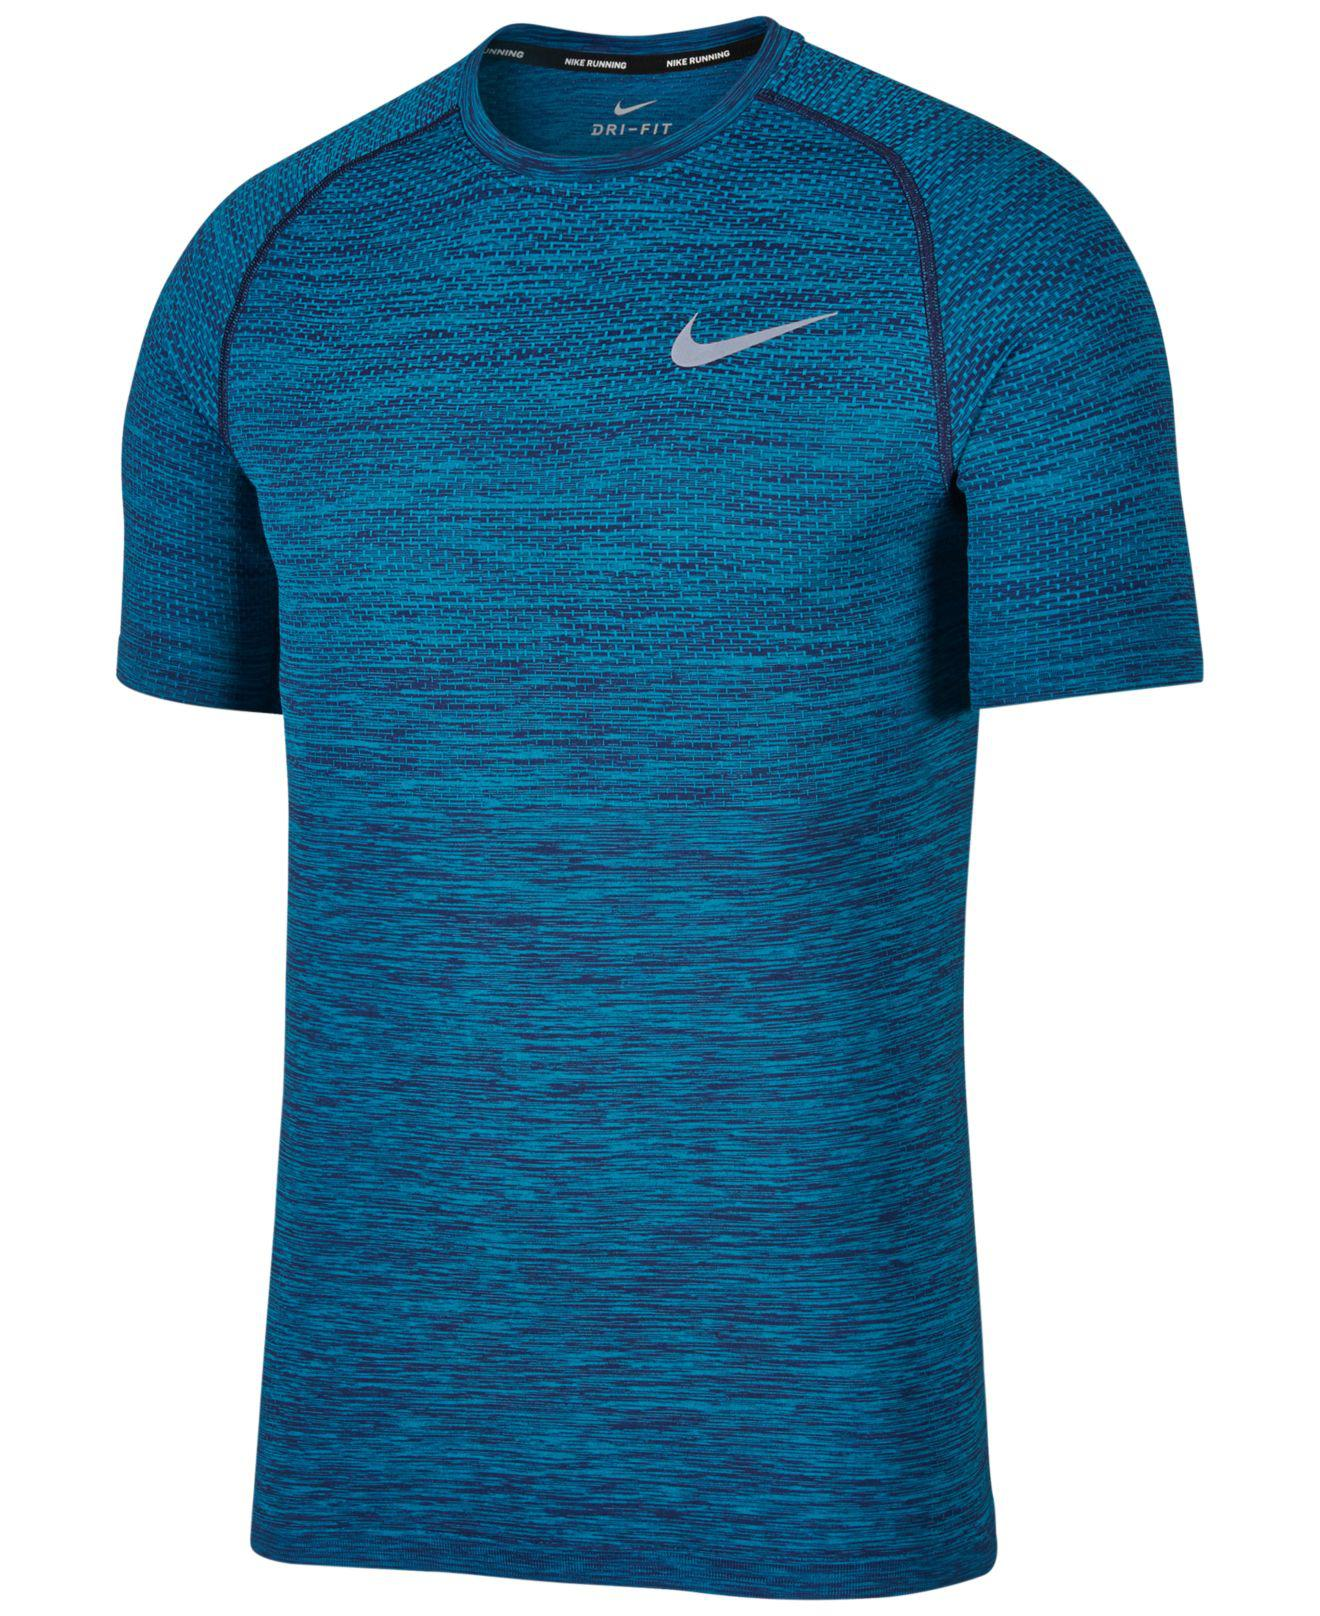 df583487a Nike Dry Knit Short Sleeve Printed Running Shirt in Blue for Men - Lyst